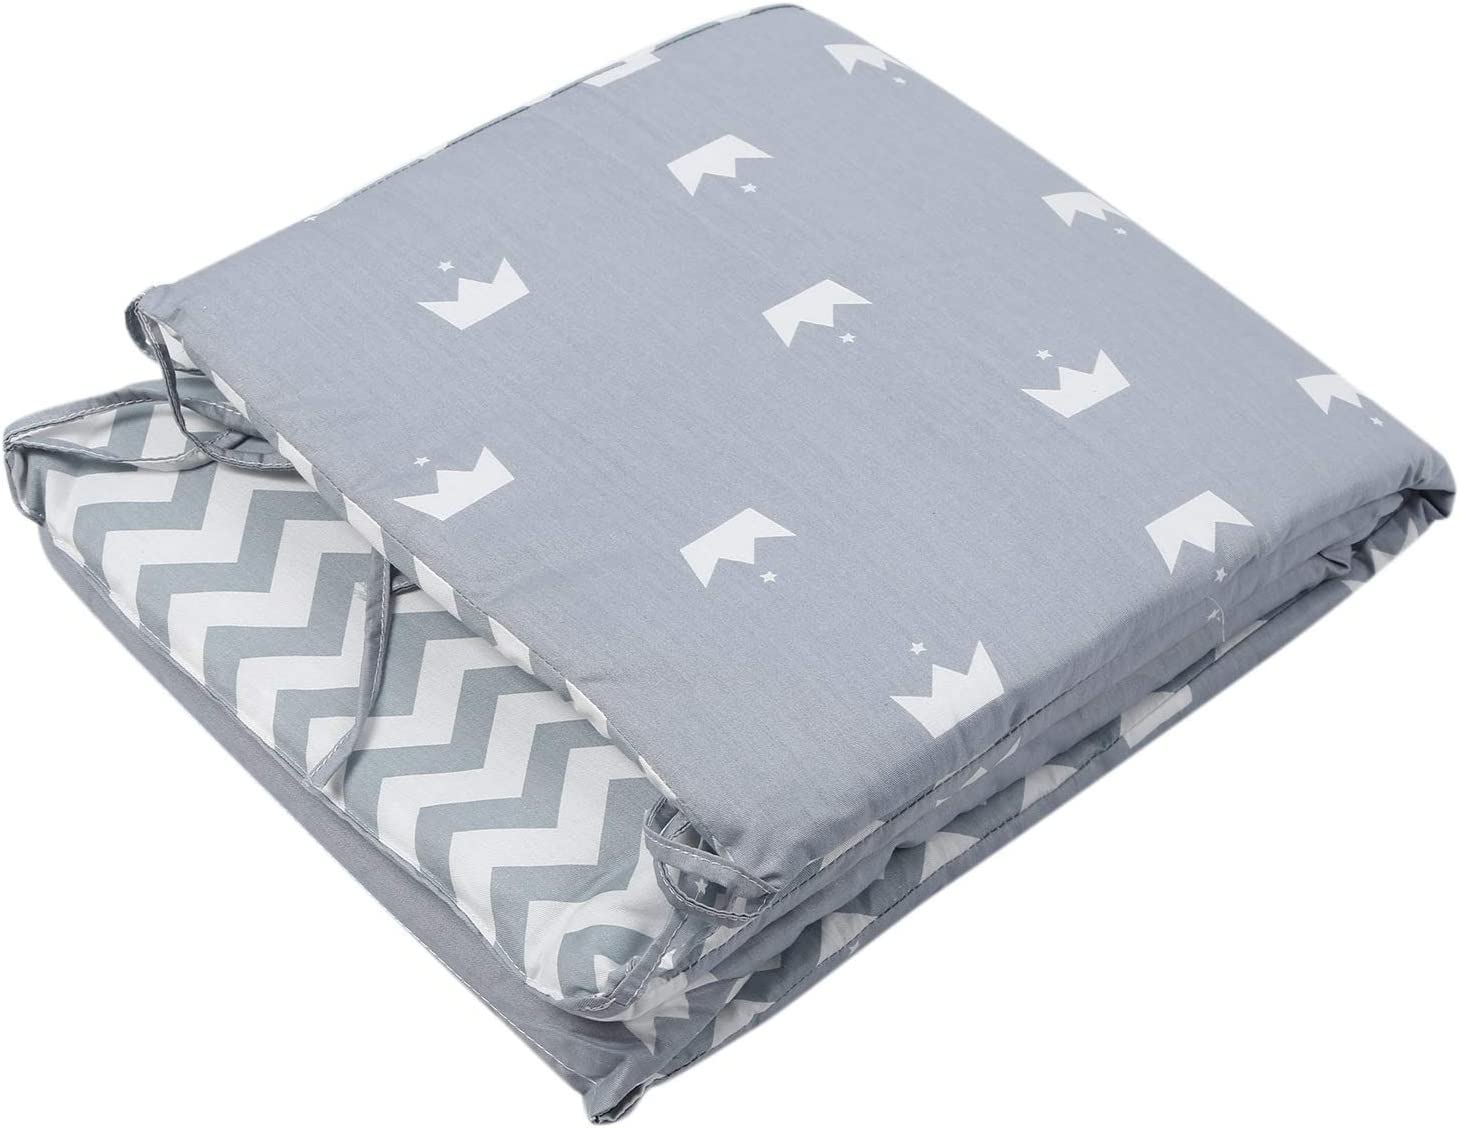 Nrpfell Breathable Crib Bumper Pads Washable Padded Crib Liner Set for Baby Boys Girls Safe Bumper